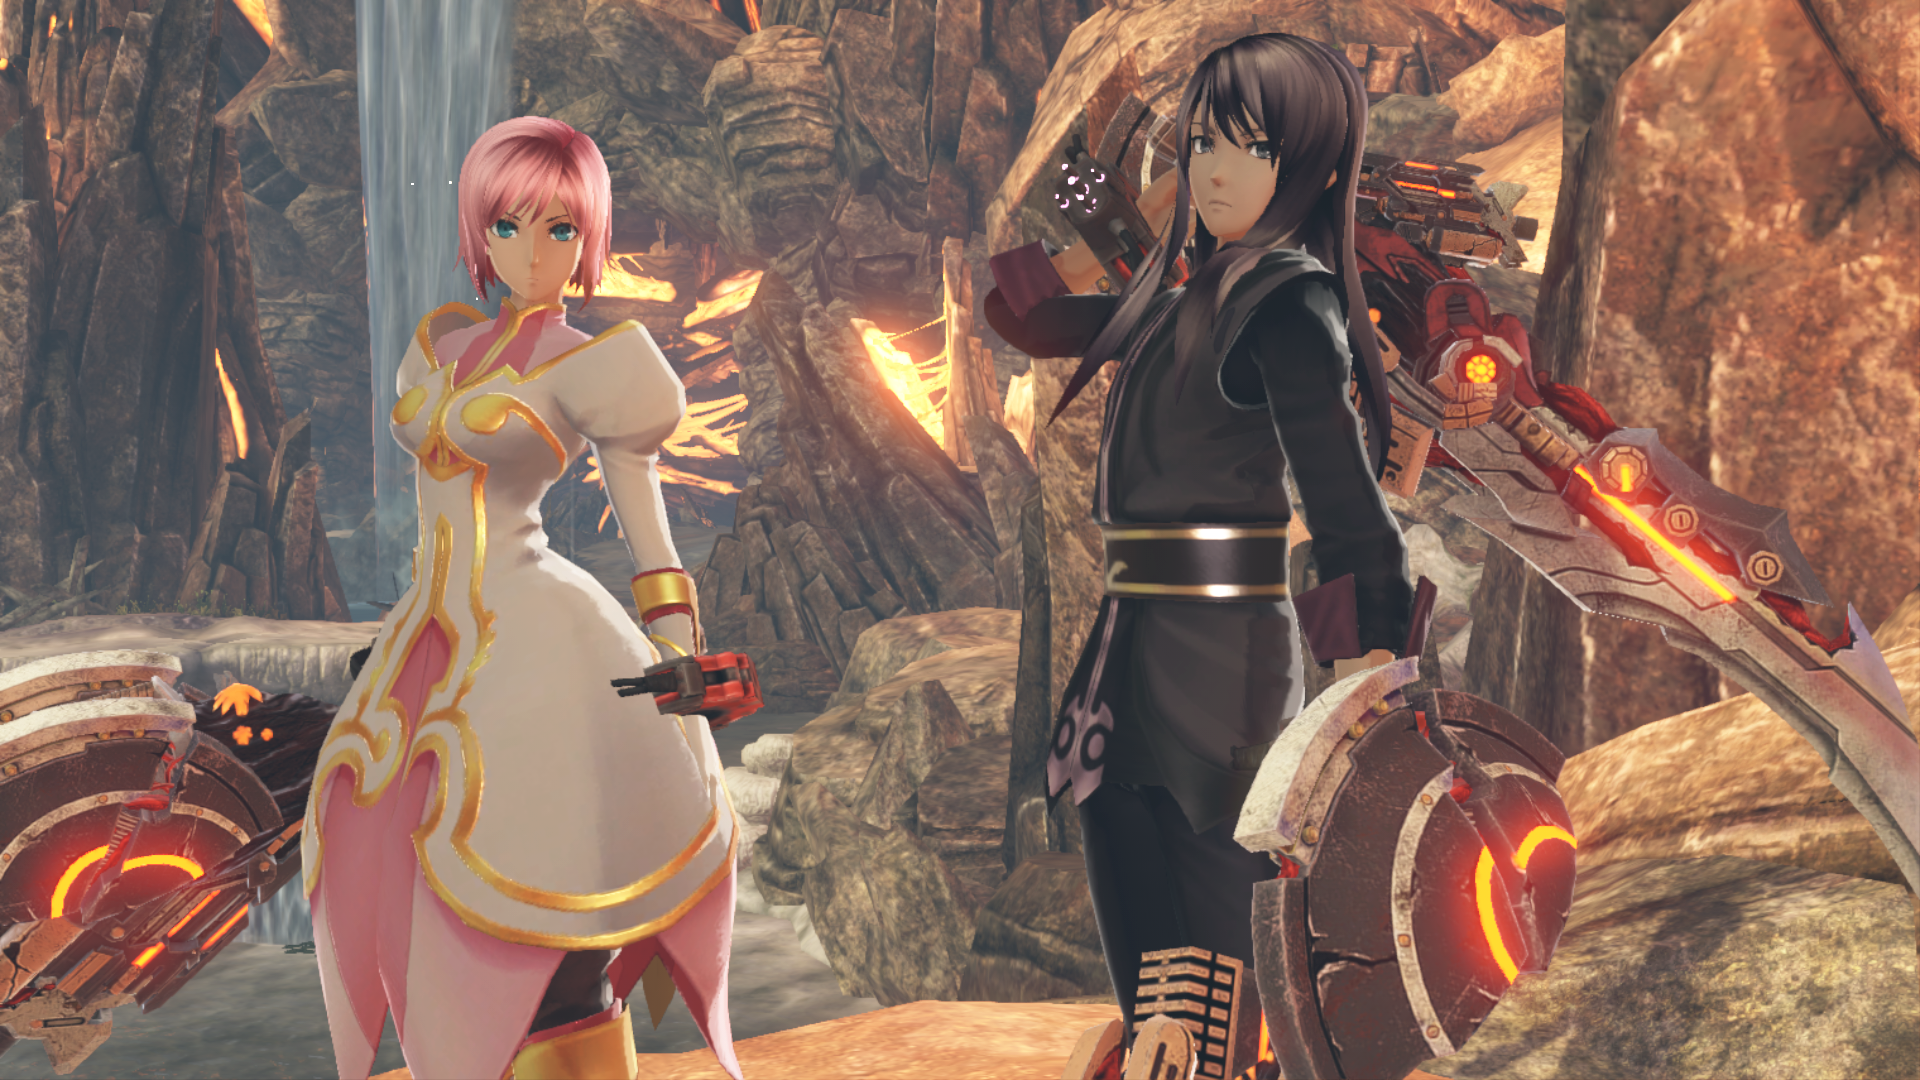 God Eater 3 Command Guide: How to control your NPC allies and deal